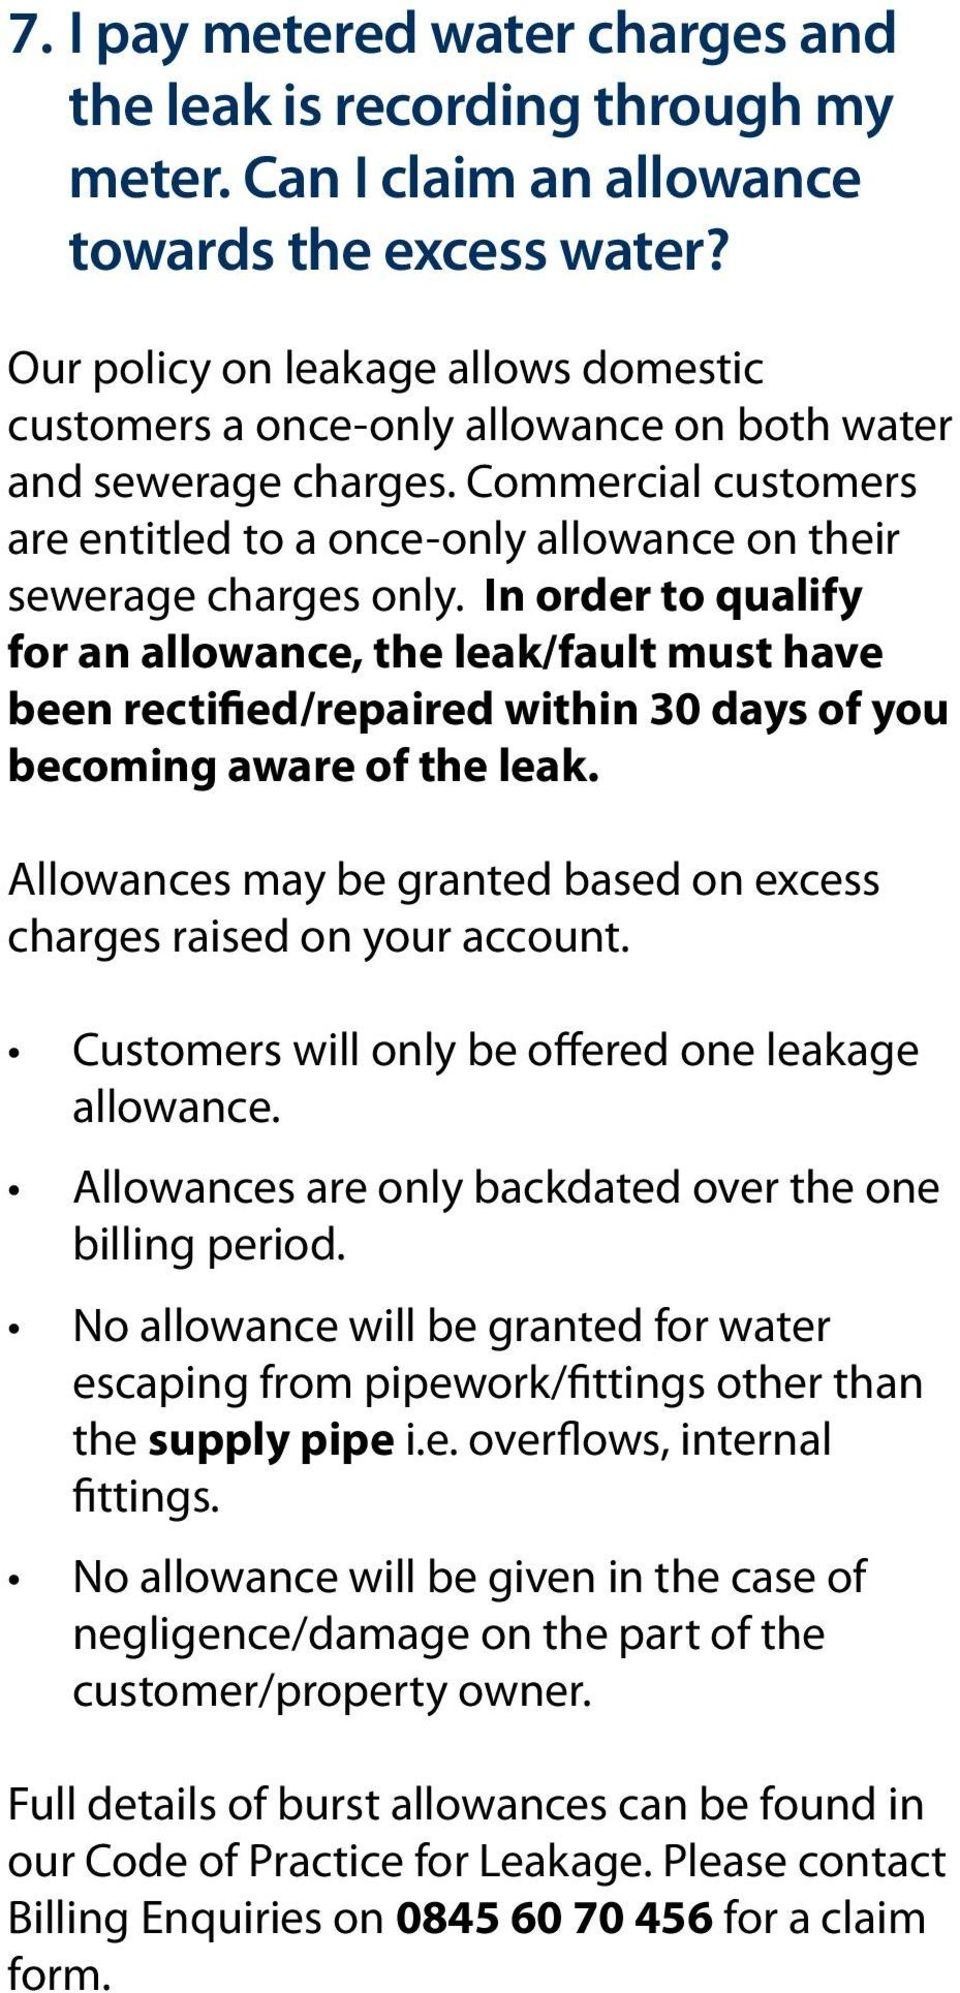 In order to qualify for an allowance, the leak/fault must have been rectified/repaired within 30 days of you becoming aware of the leak.